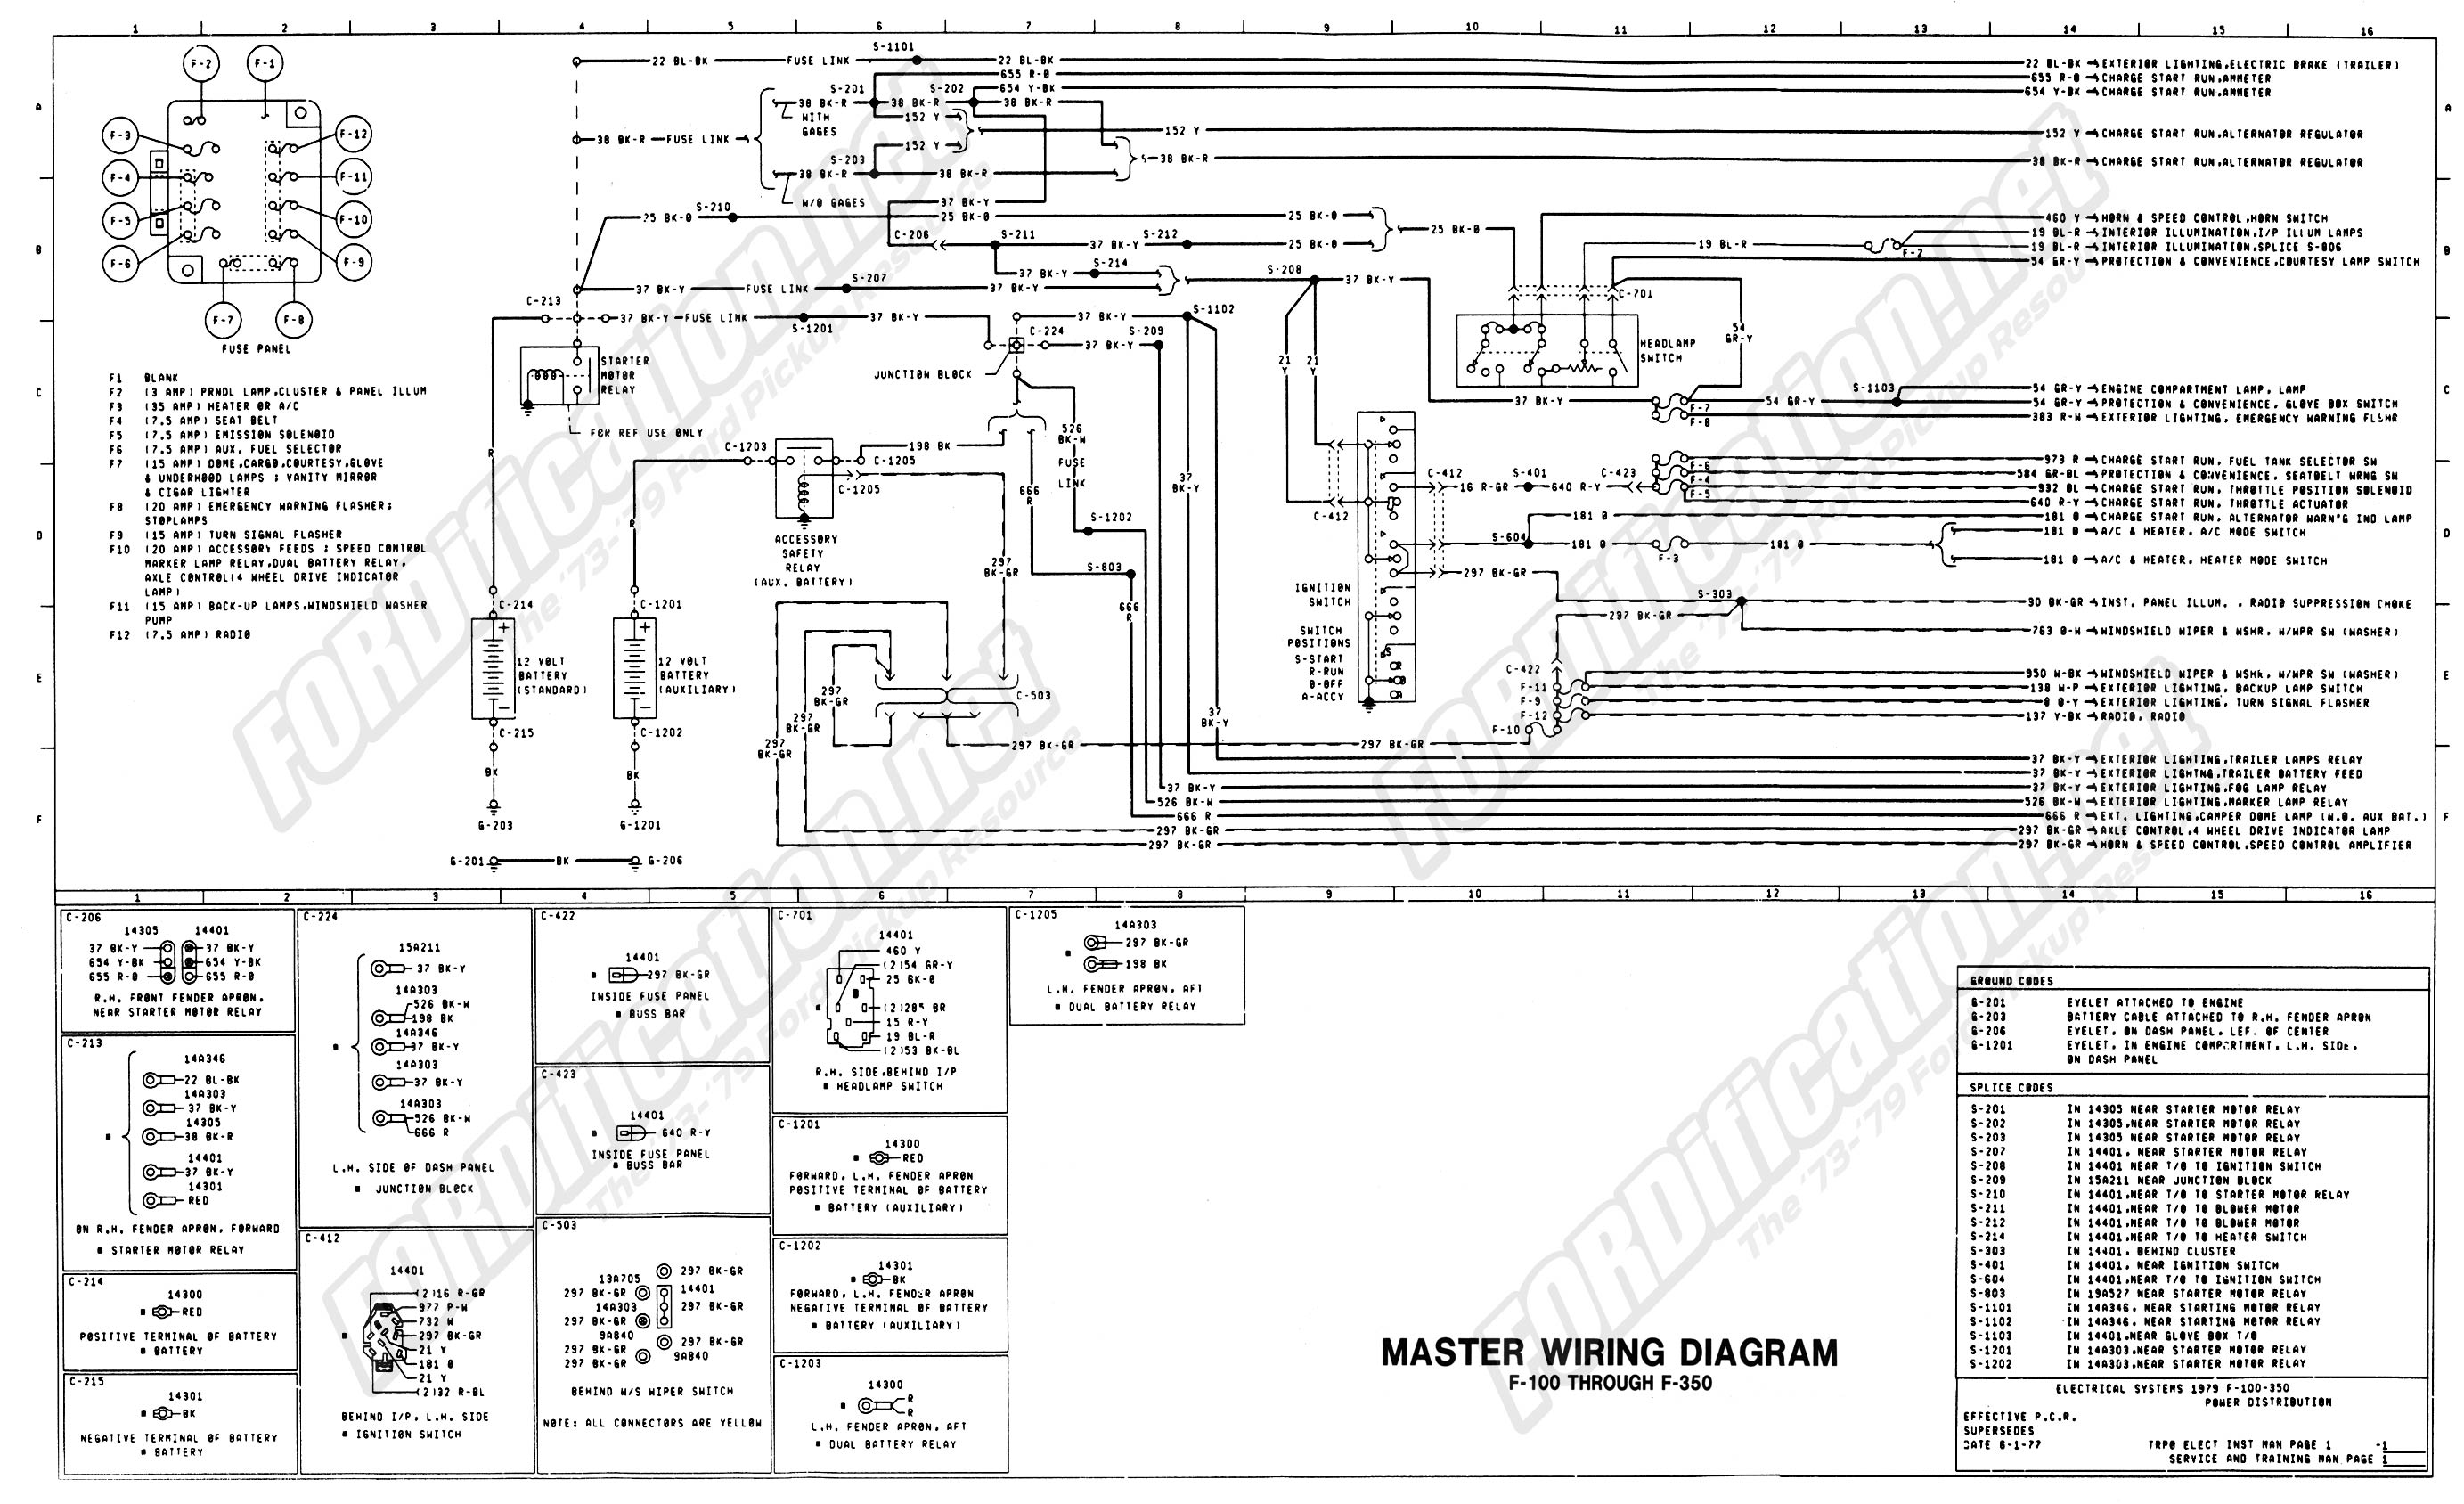 wiring_79master_1of9 truck wiring diagram 1986 chevy truck wiring diagram \u2022 free wiring 1946 ford truck wiring diagram at bayanpartner.co